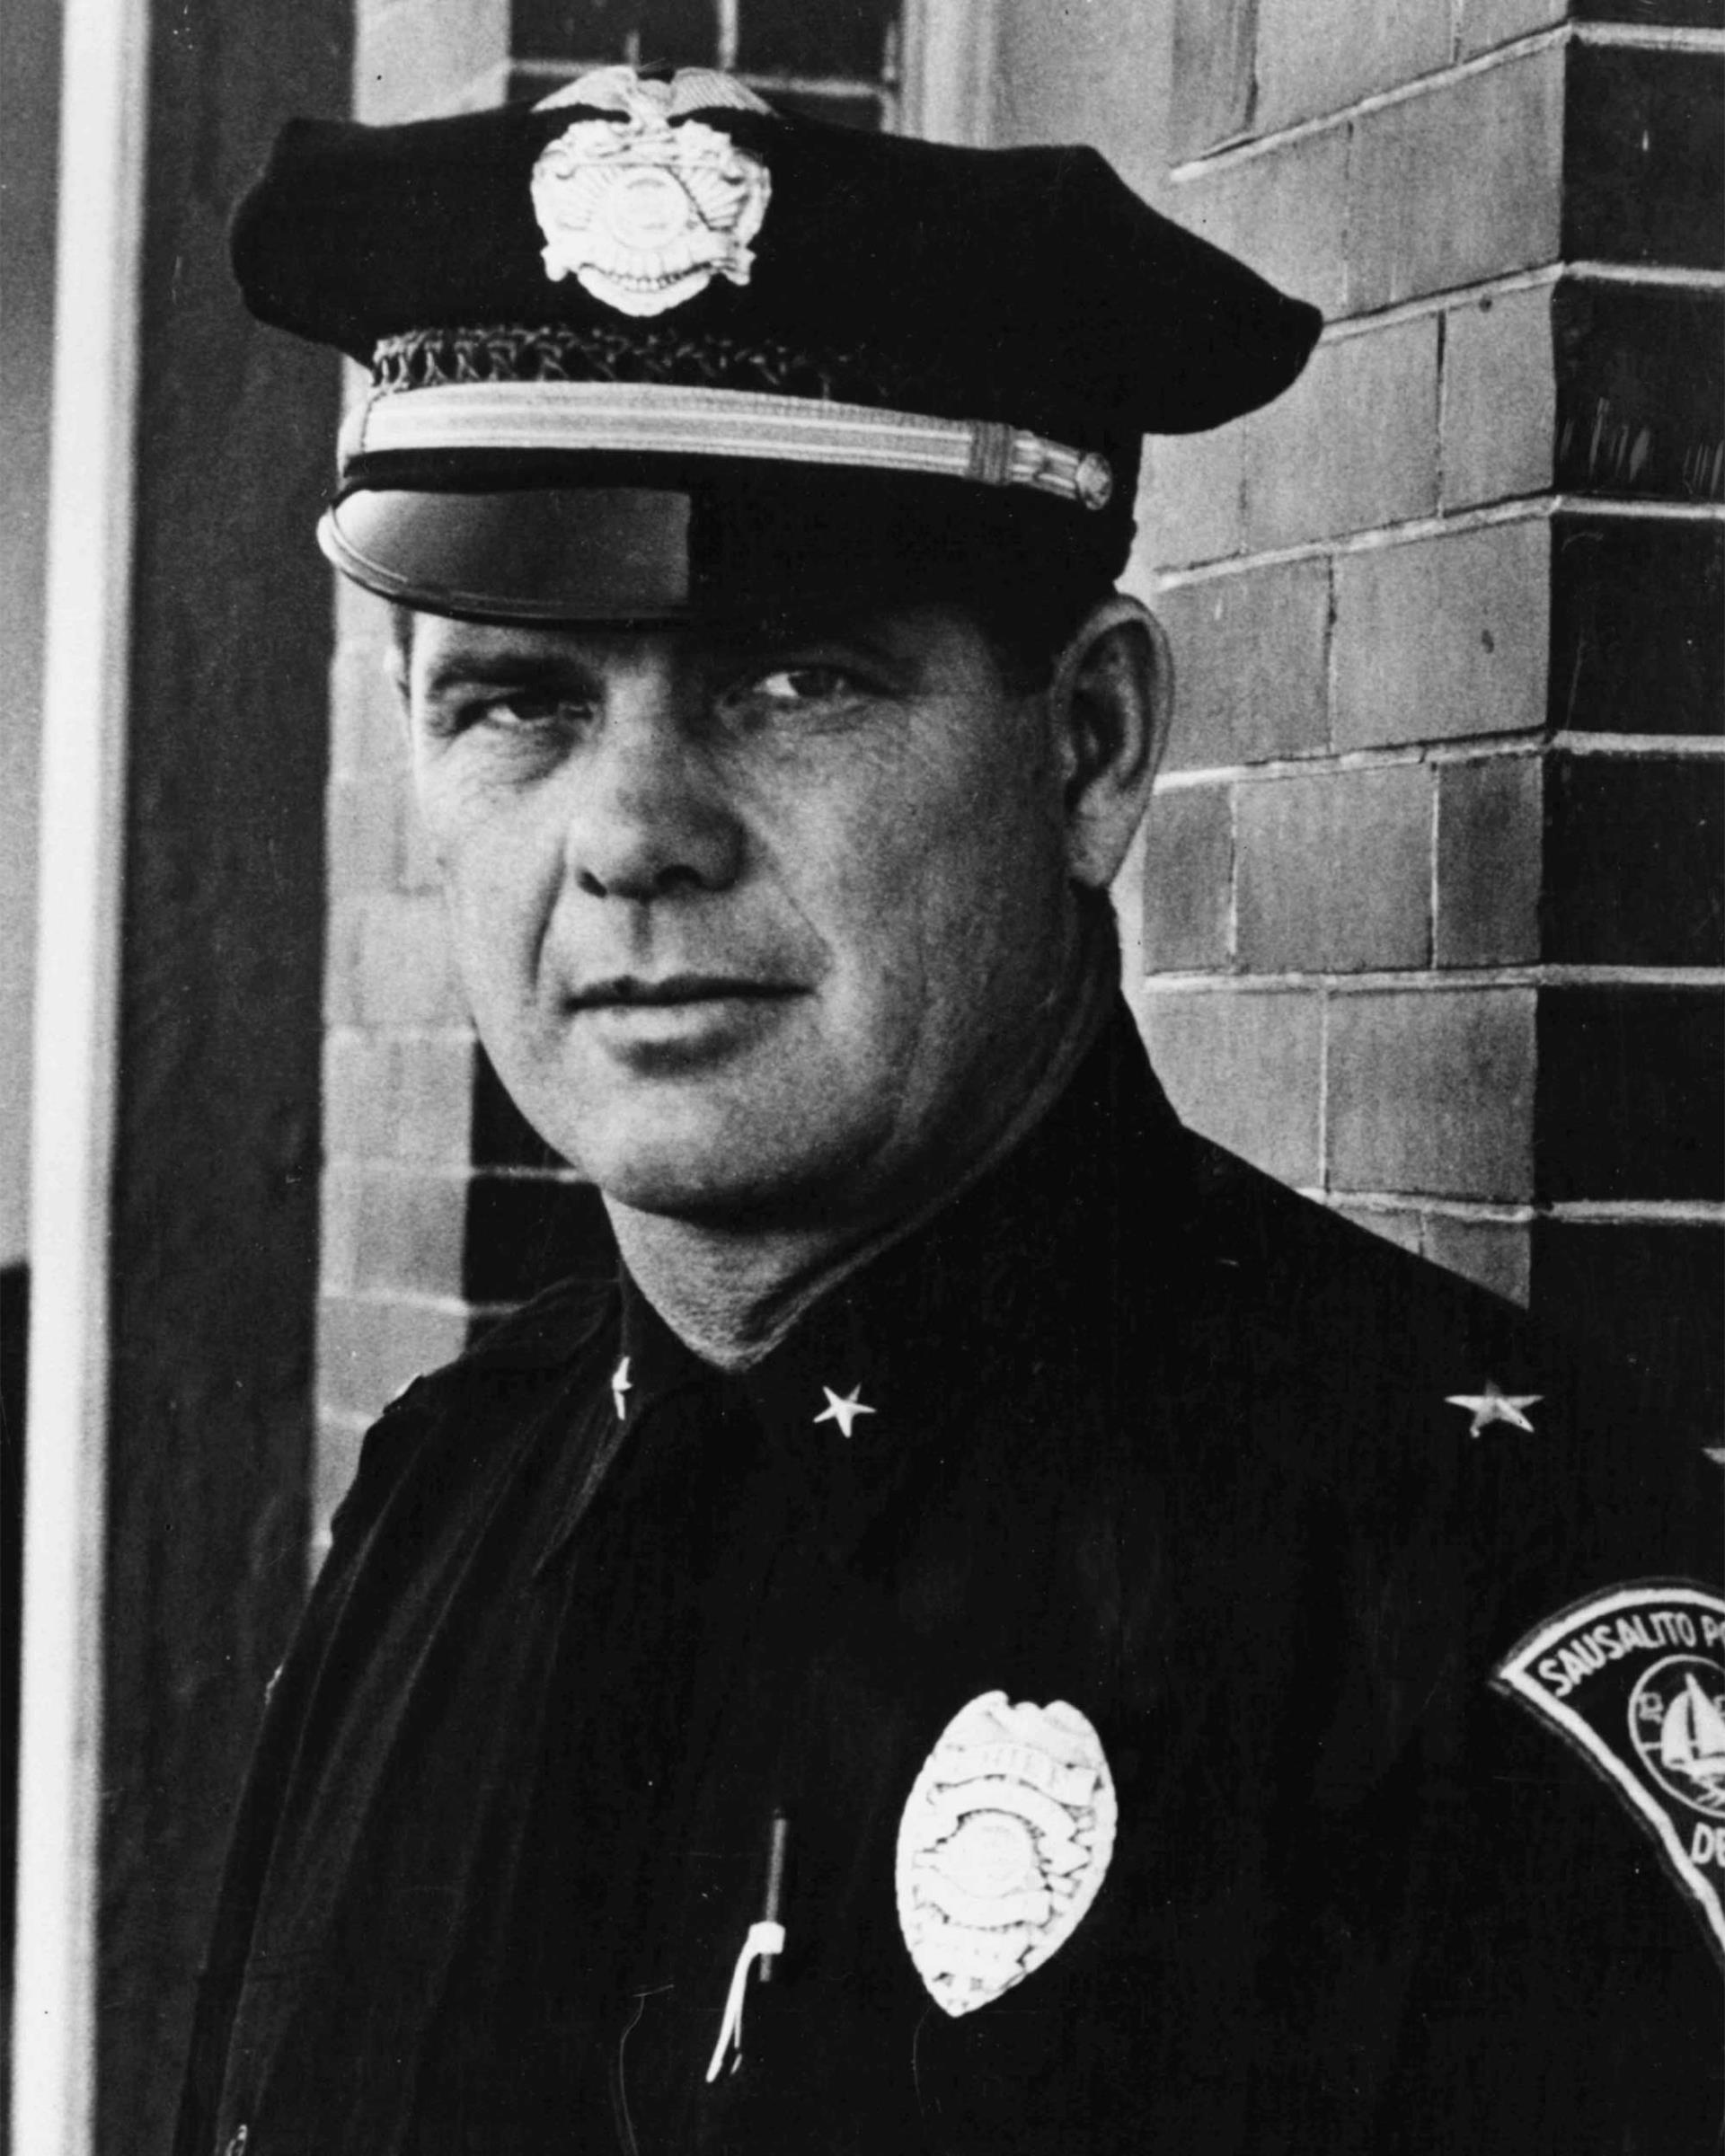 Chief Howard Goerndt (1959-1963)